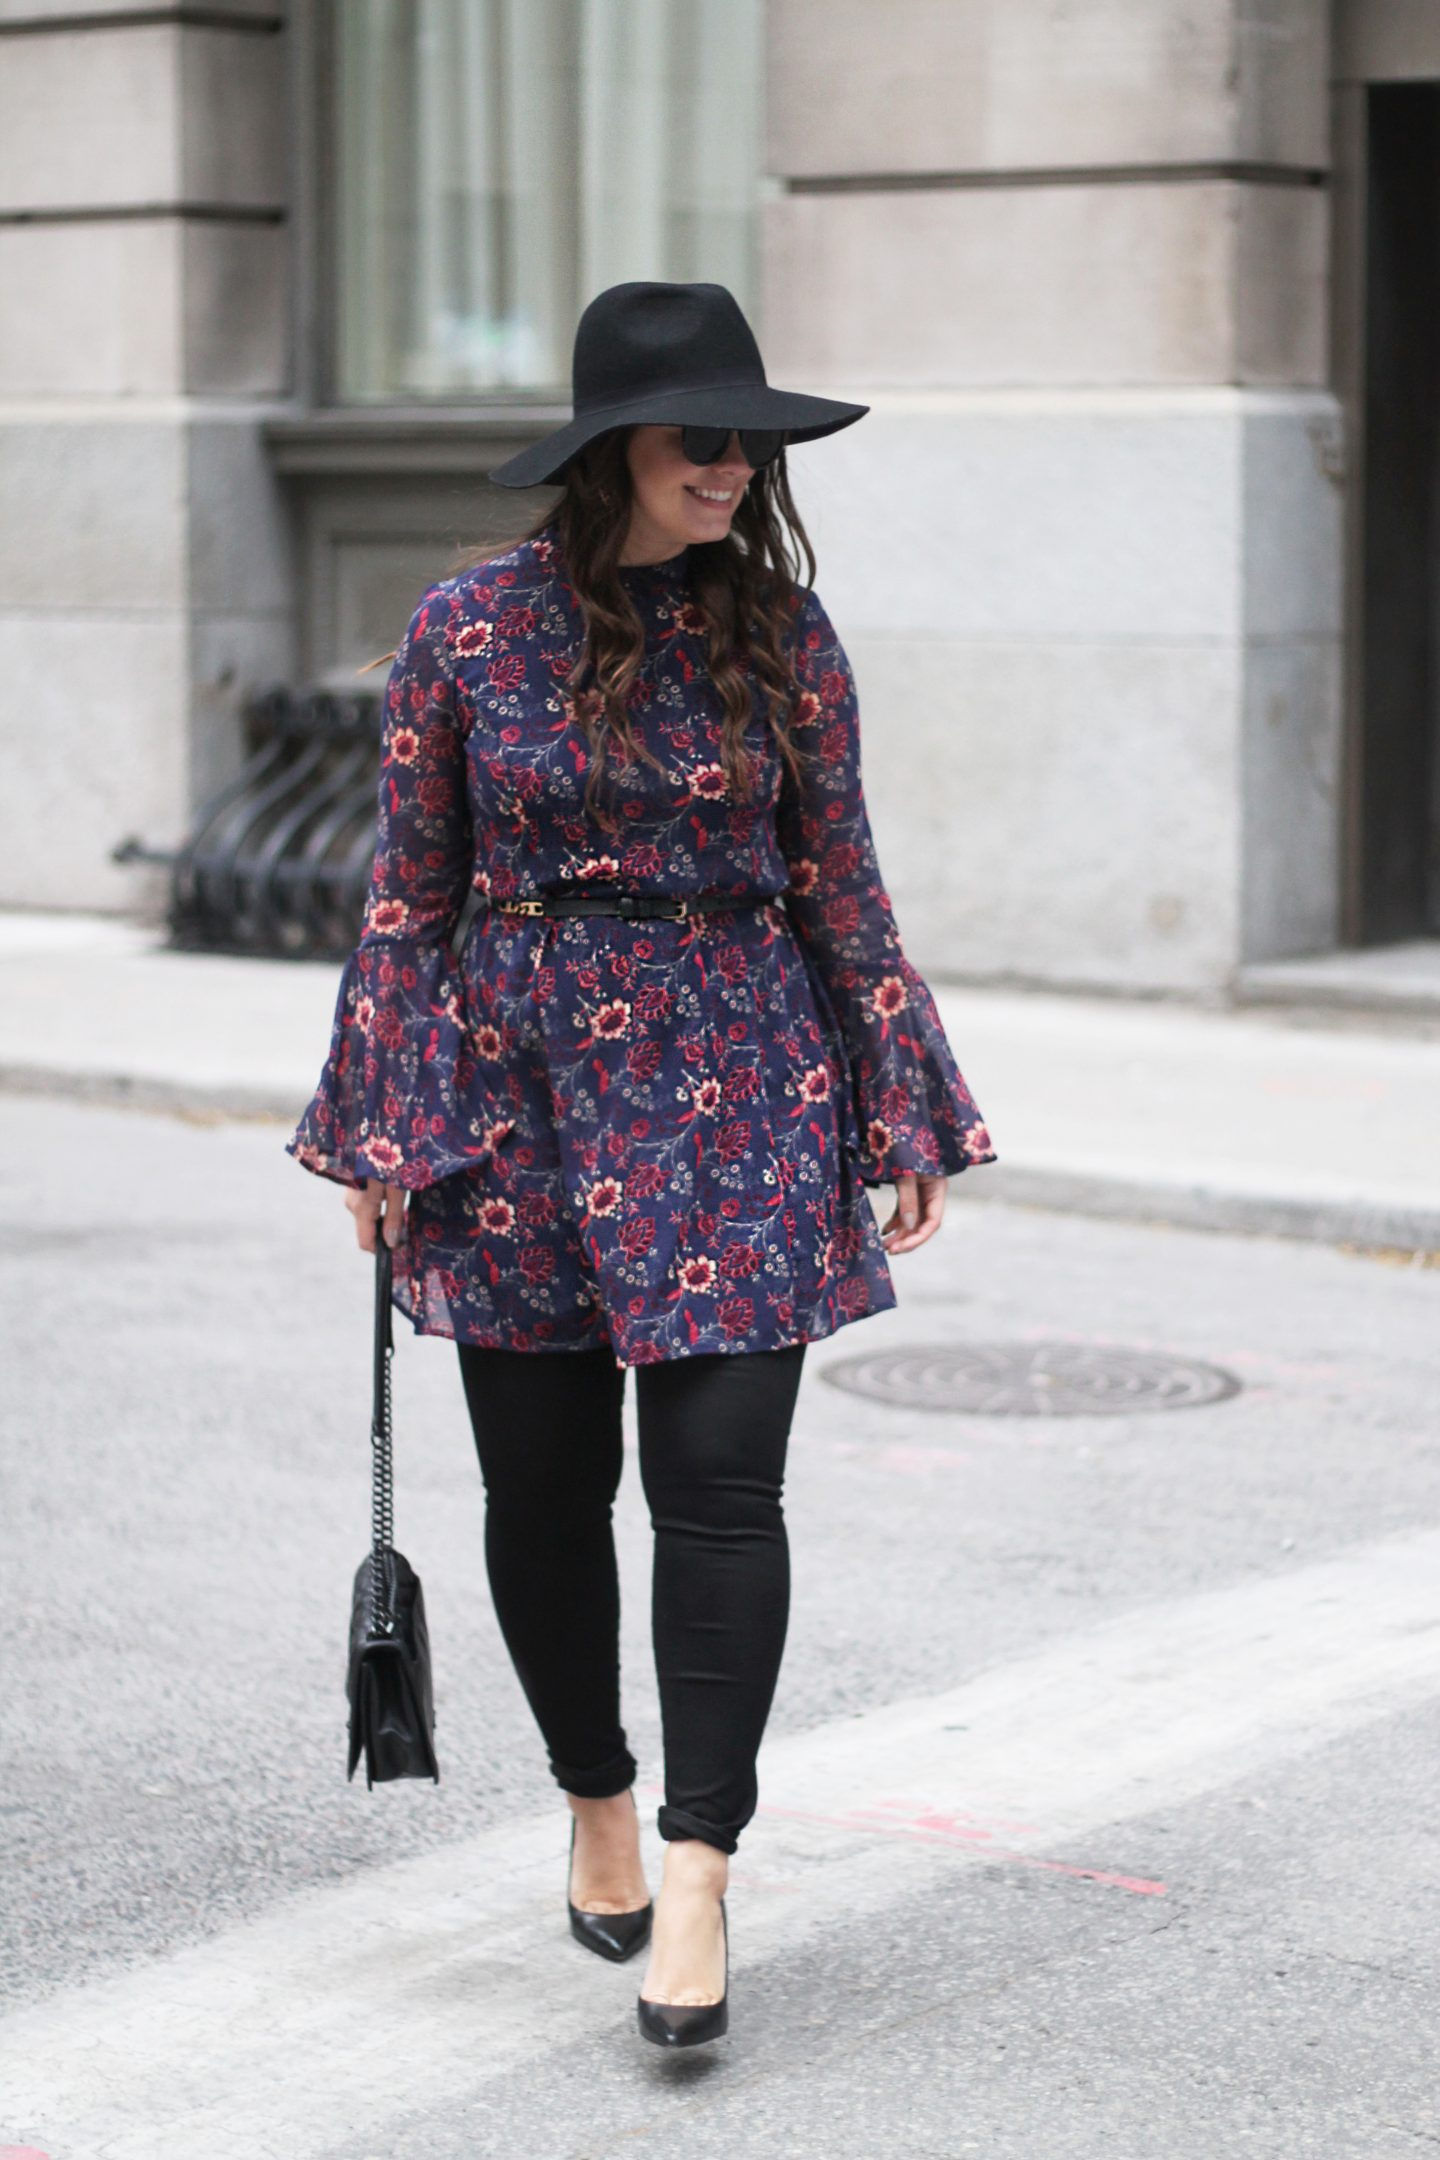 How To Wear A Foral Dress, Flared Bell Sleeves, Fashion Style Blogger